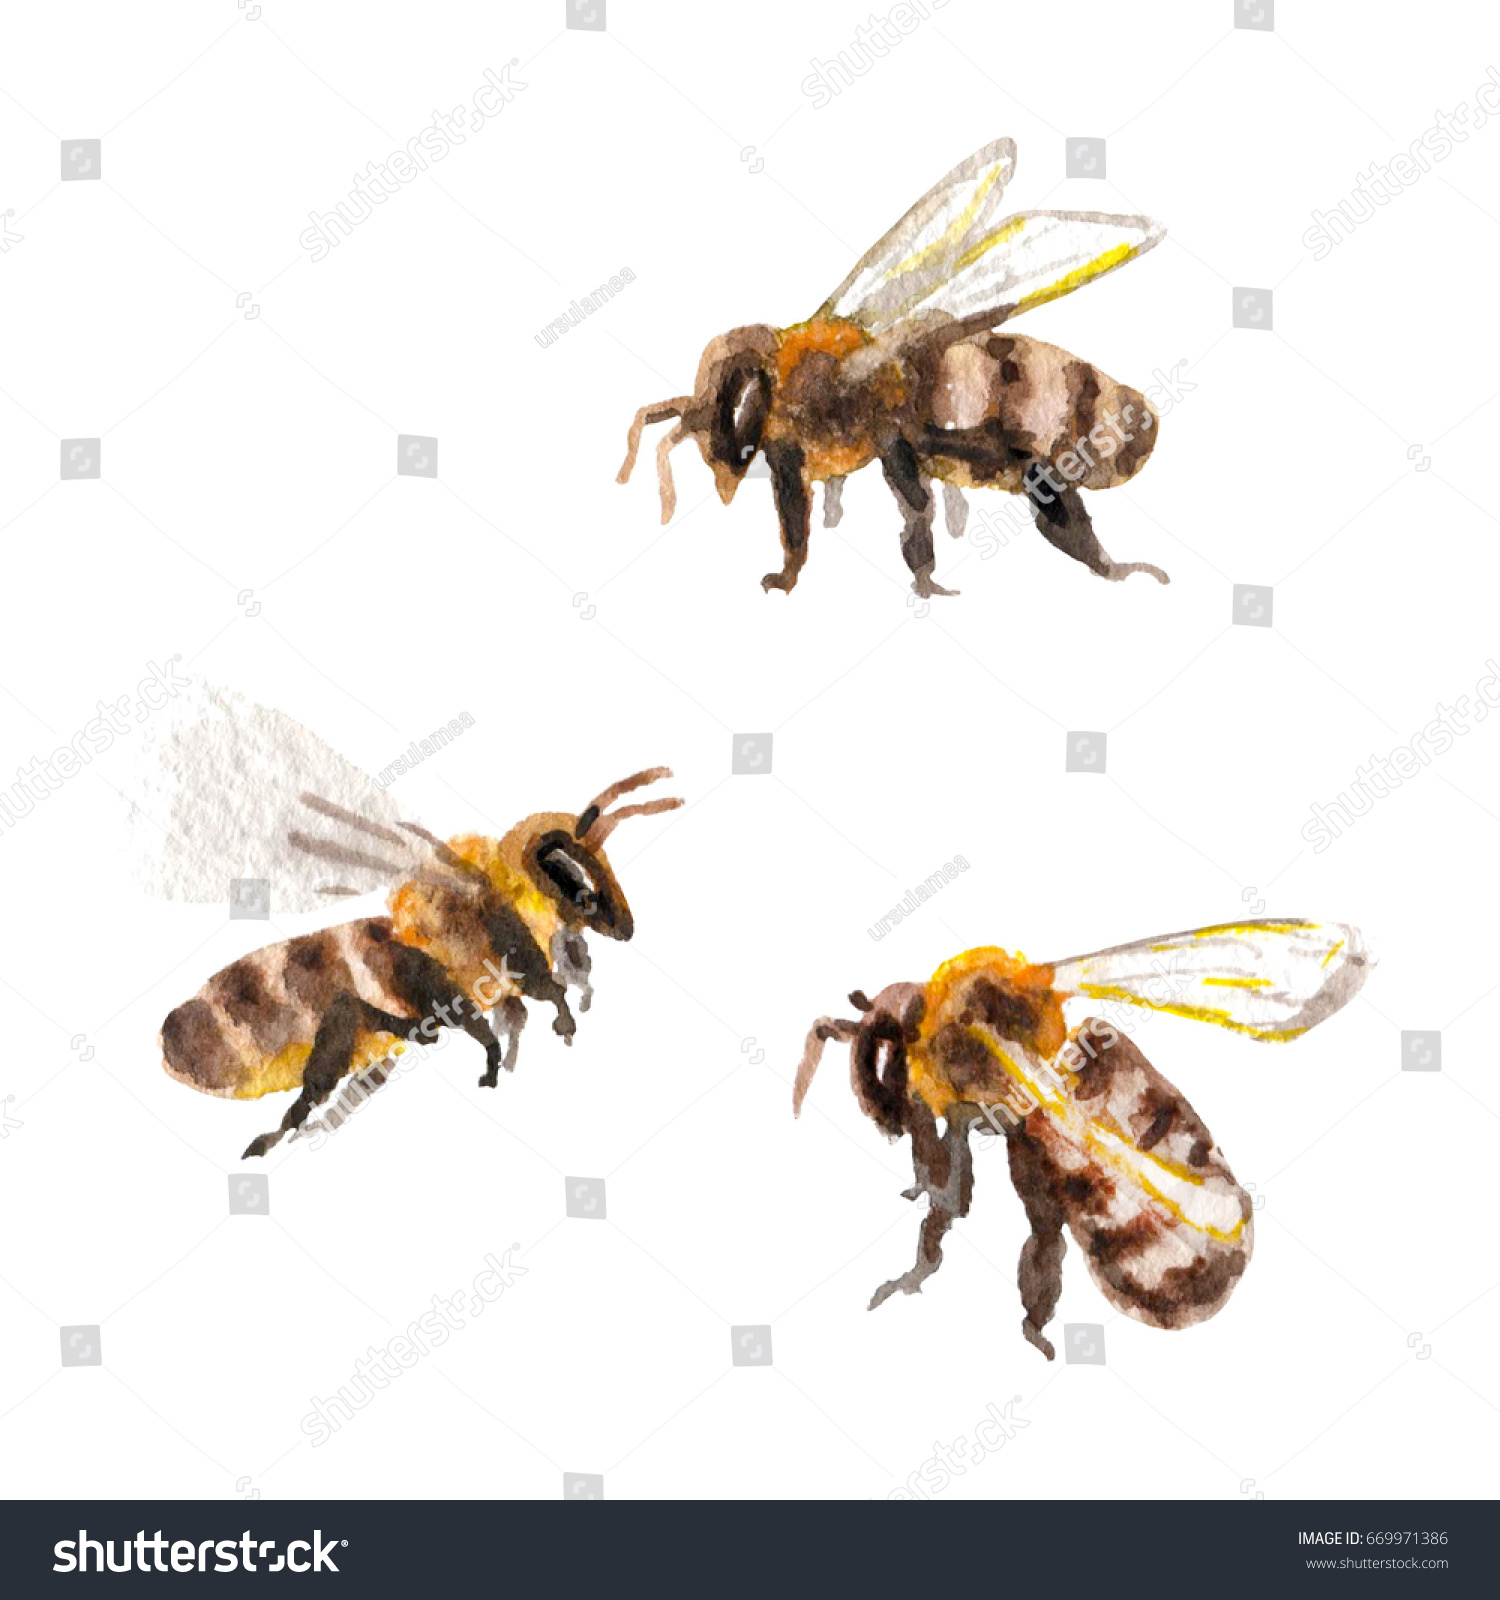 Raster Realistic Watercolor Set Of Some Bees Isolated On White Animal And Biological Themes